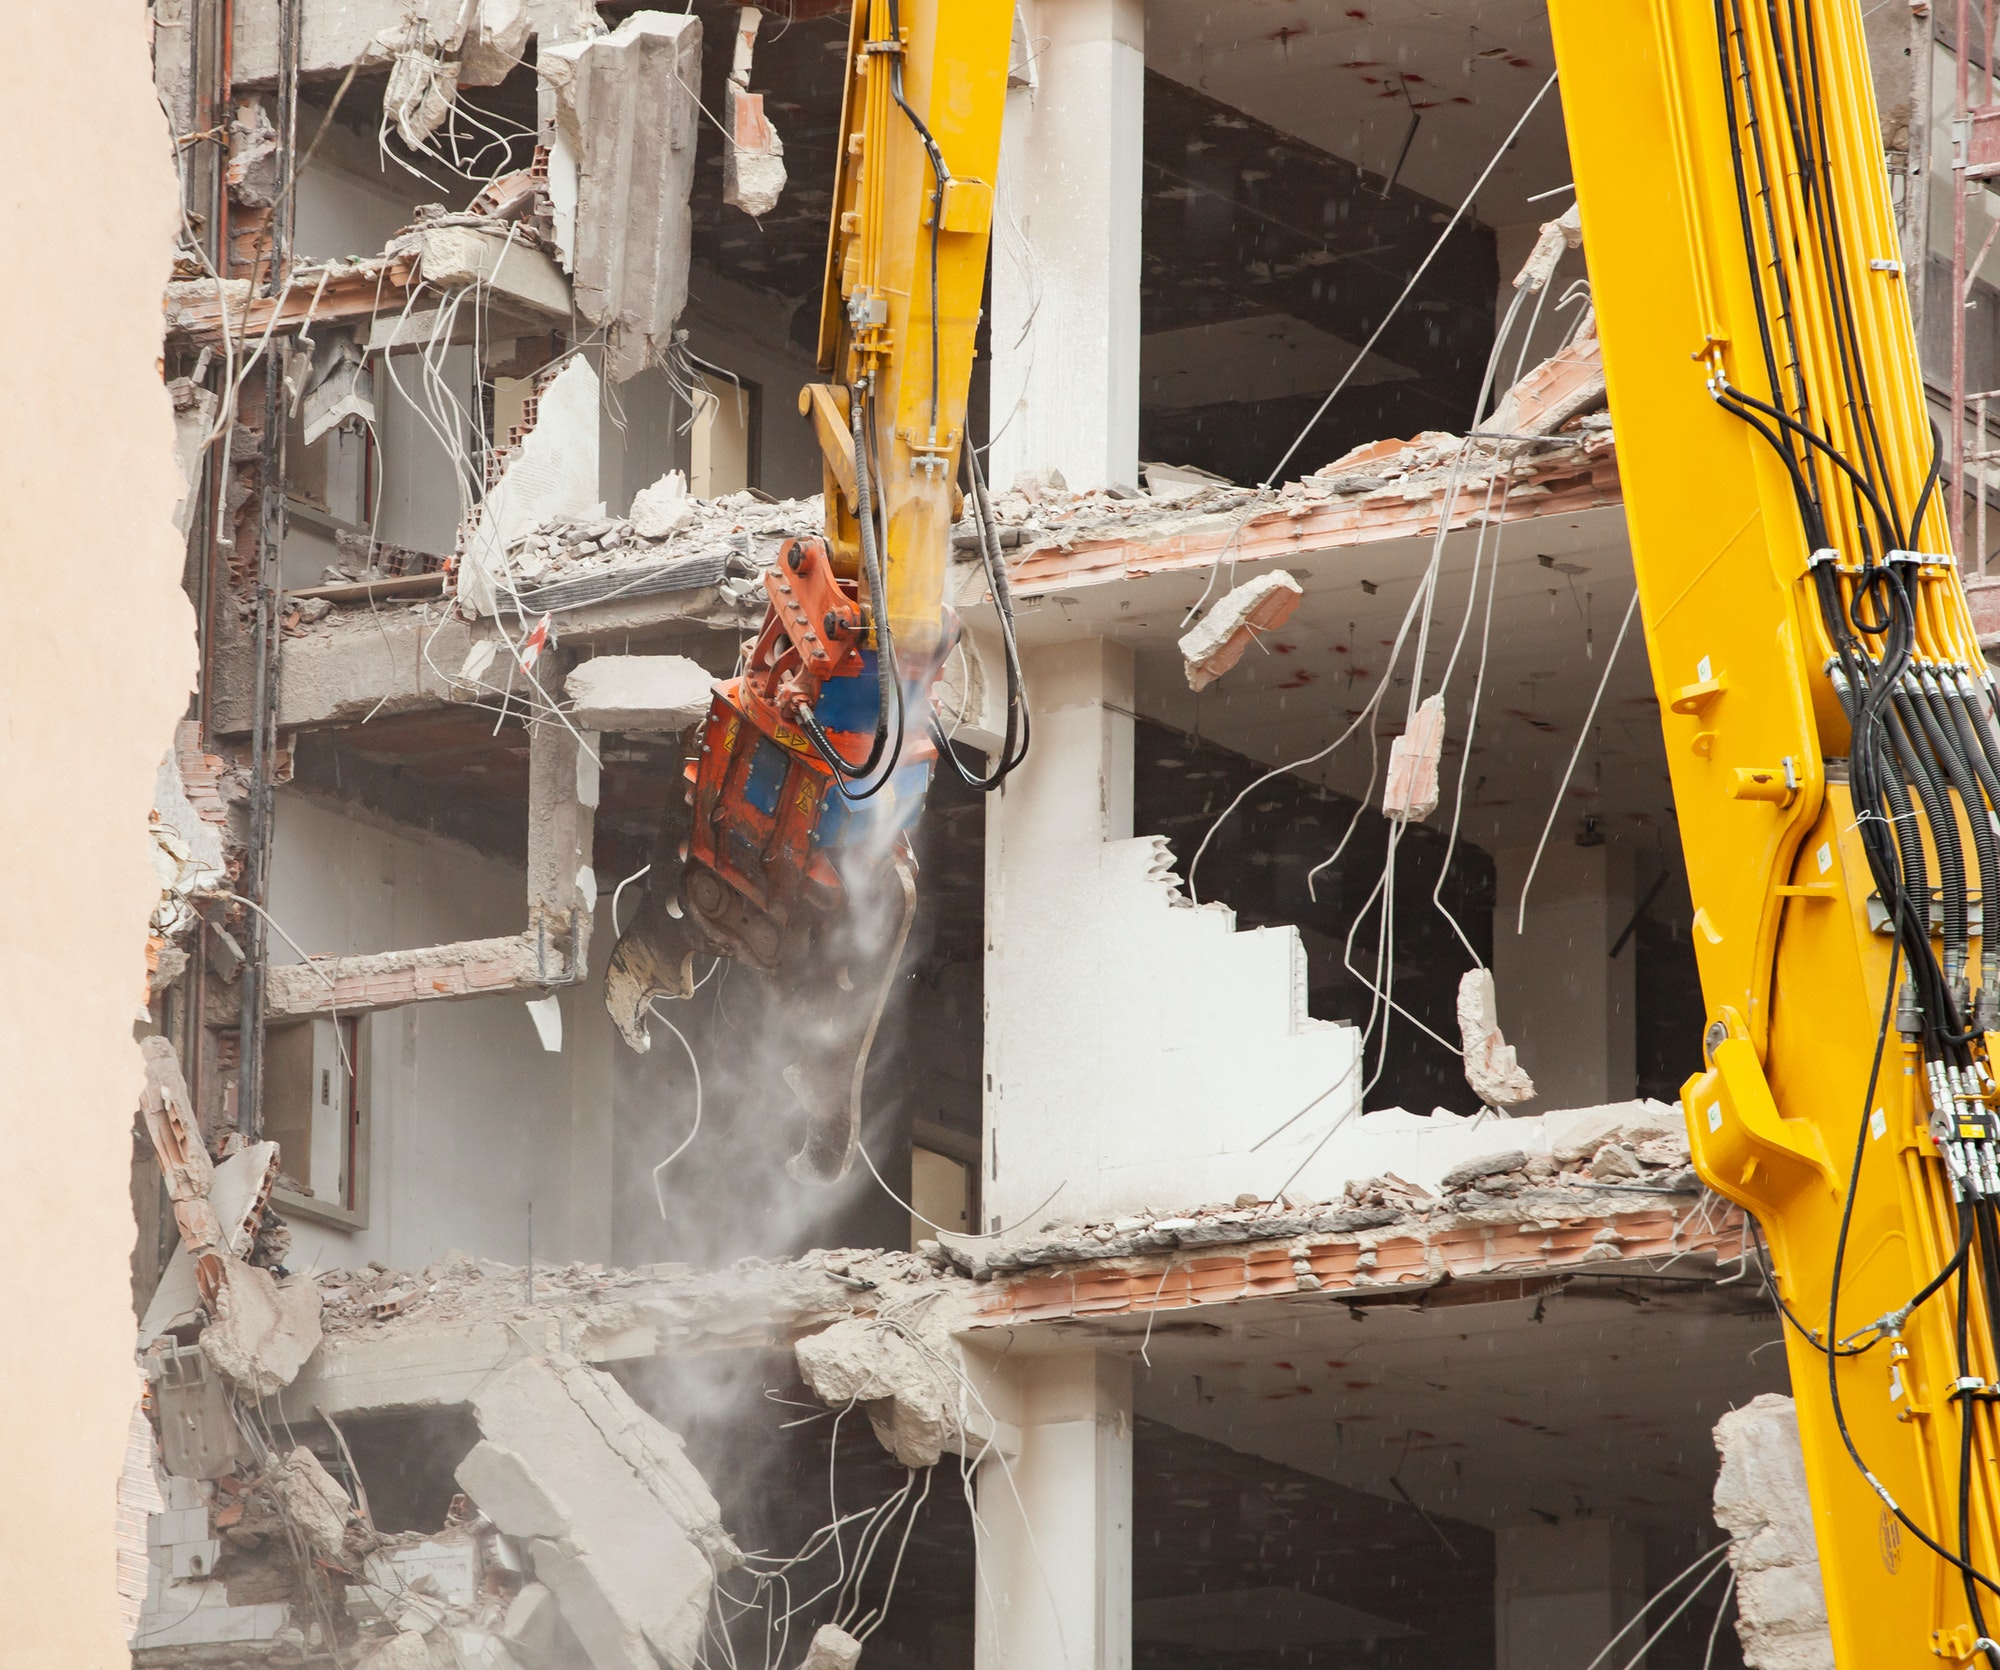 Demolition of a building for new construction.